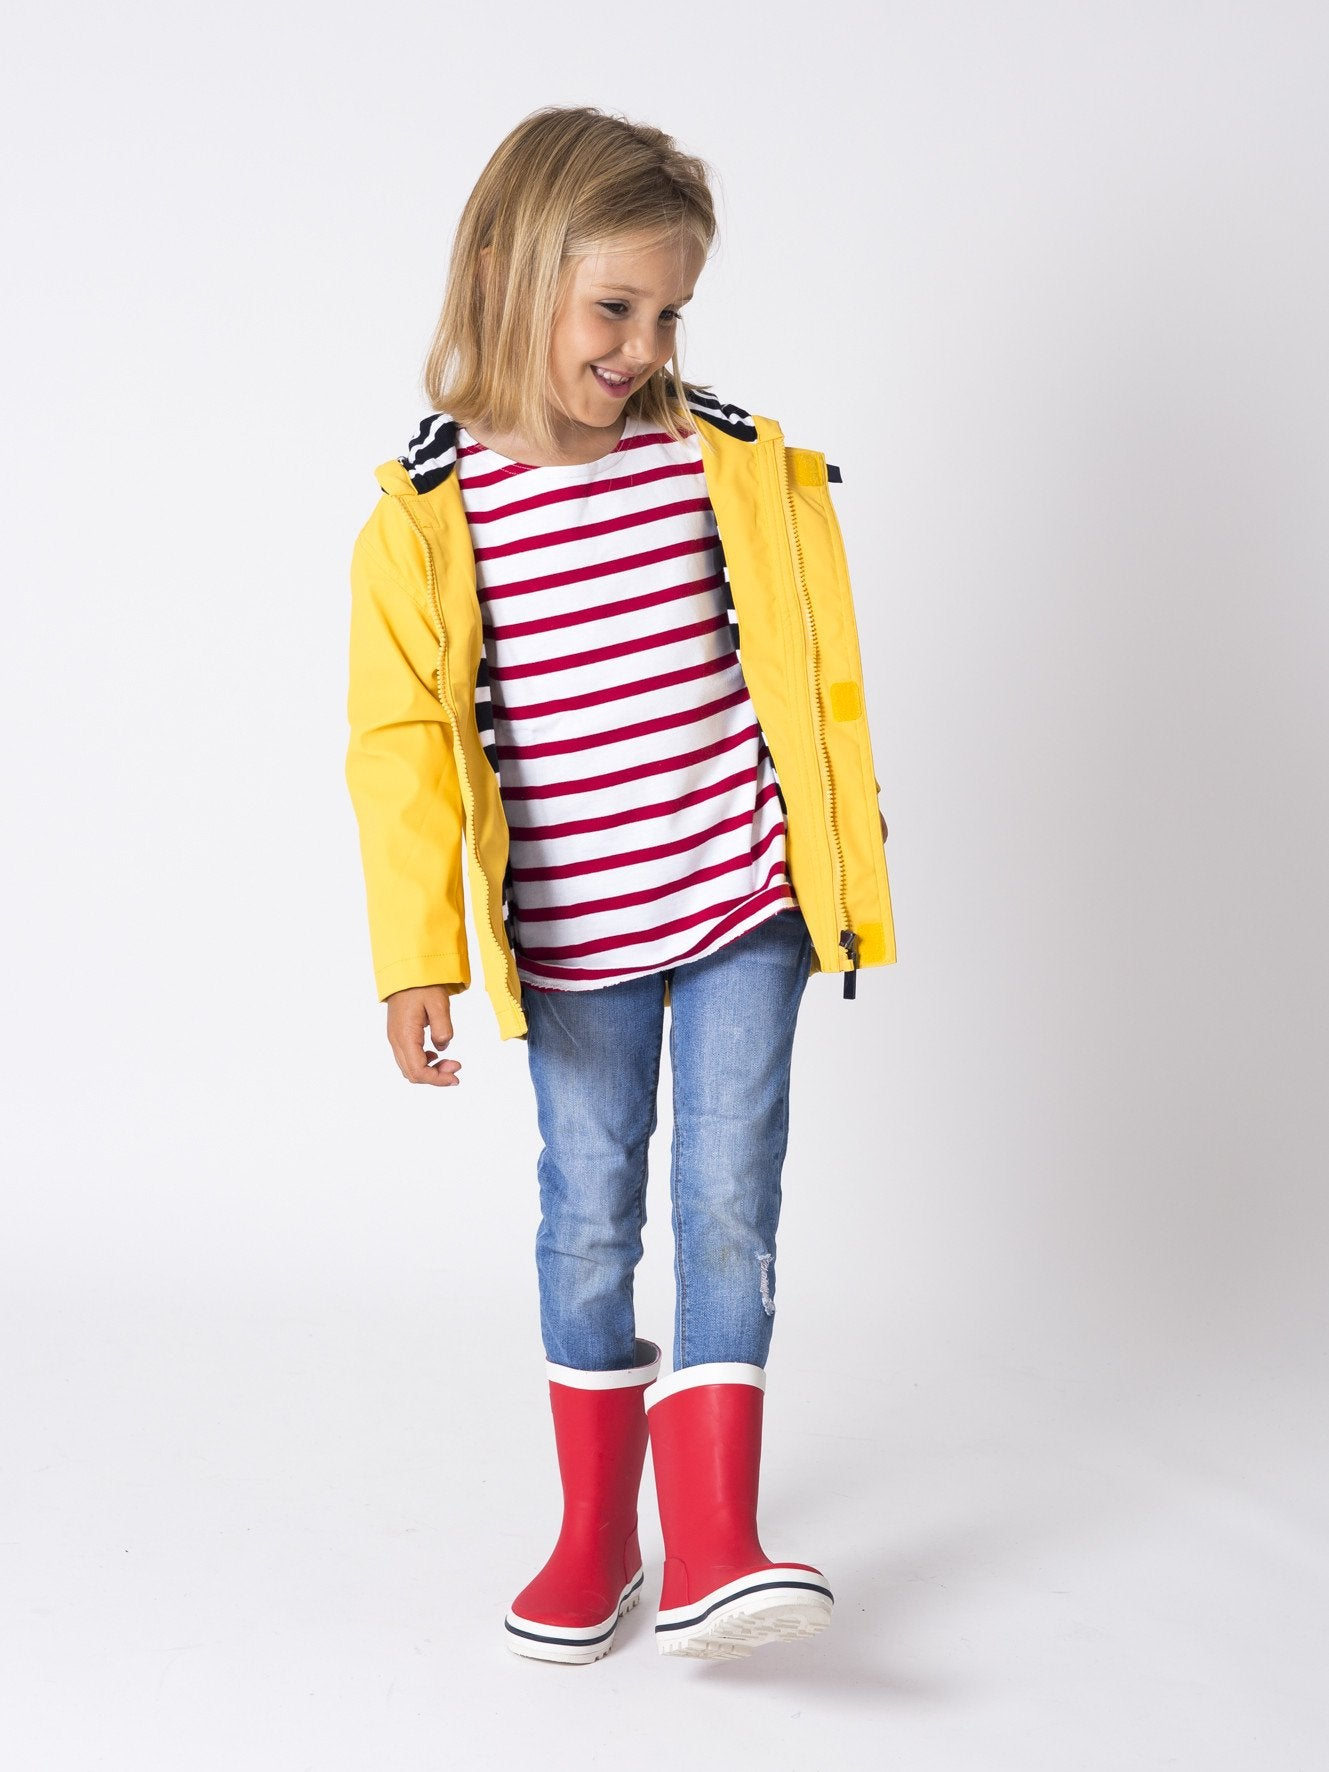 8810ec343 Red water boots - Minis Baby Kids - Children s clothing online store –  Minis Baby Kids - Baby and Children s clothing online store